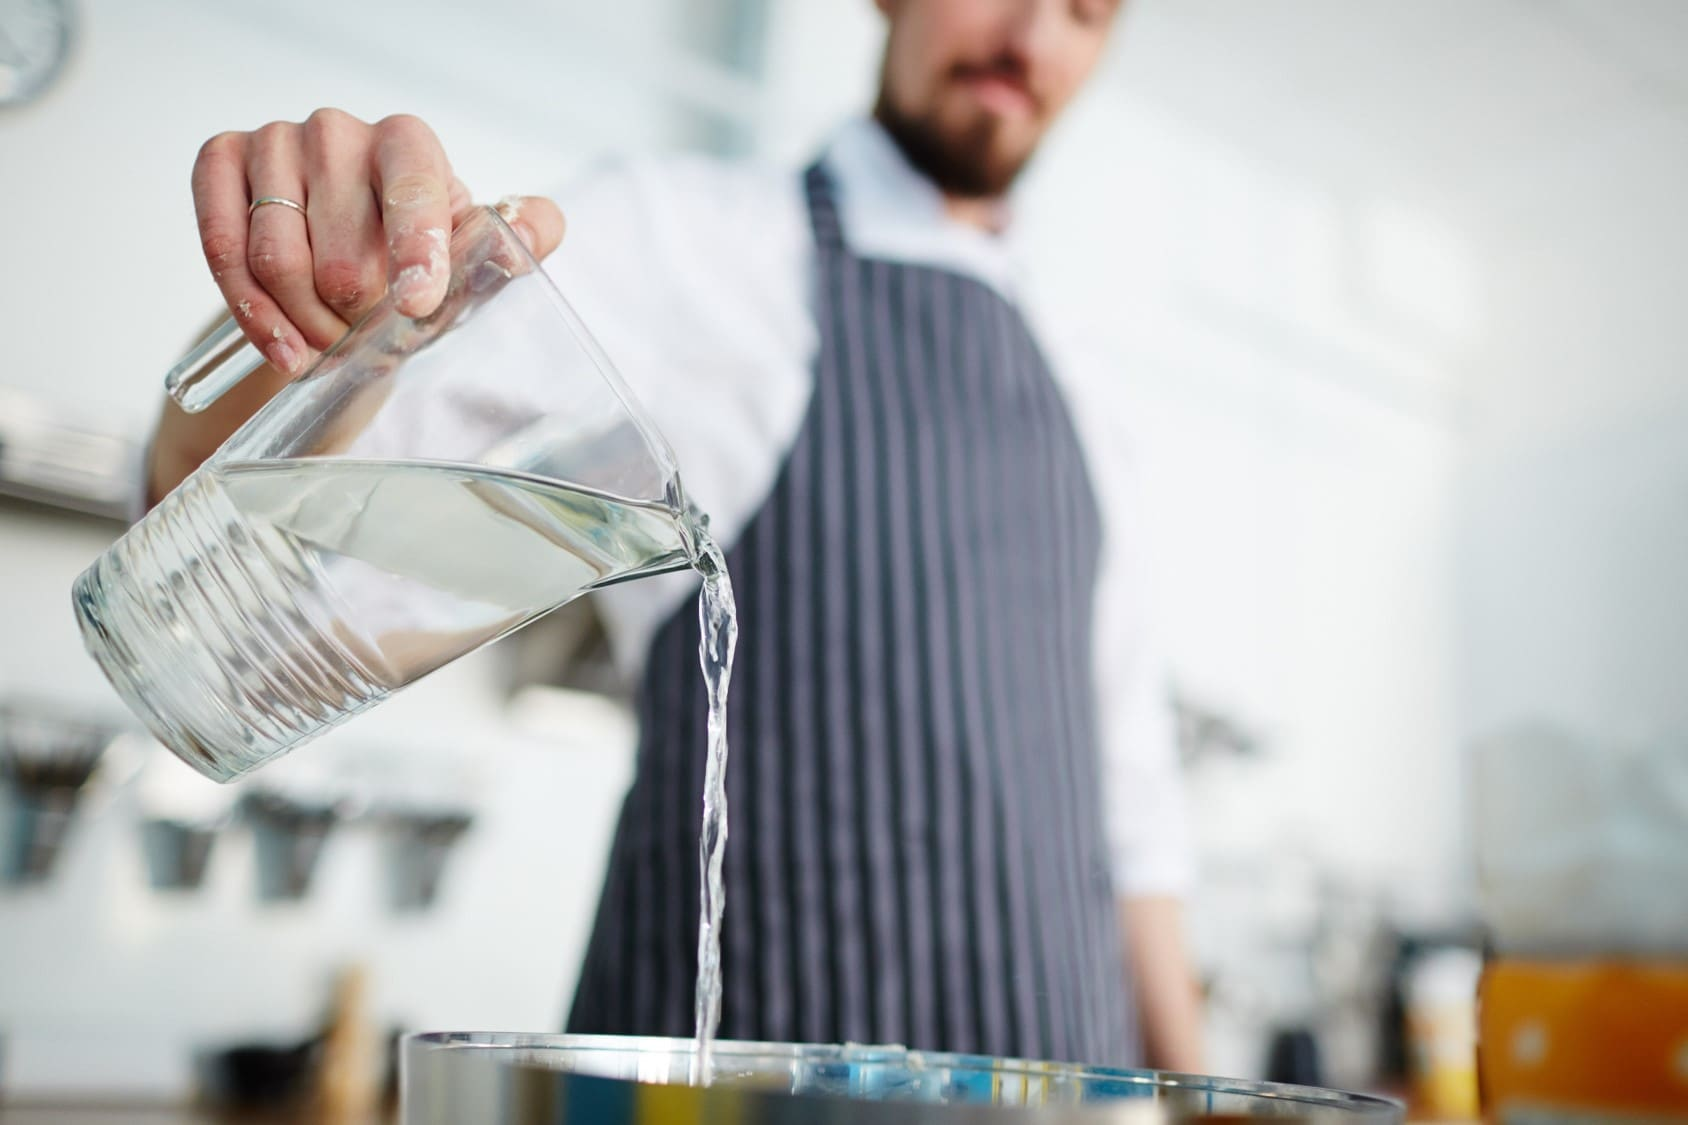 Cooking for a Cause: Here's How to Save Water While Creating Delicious Meals in Your Kitchen